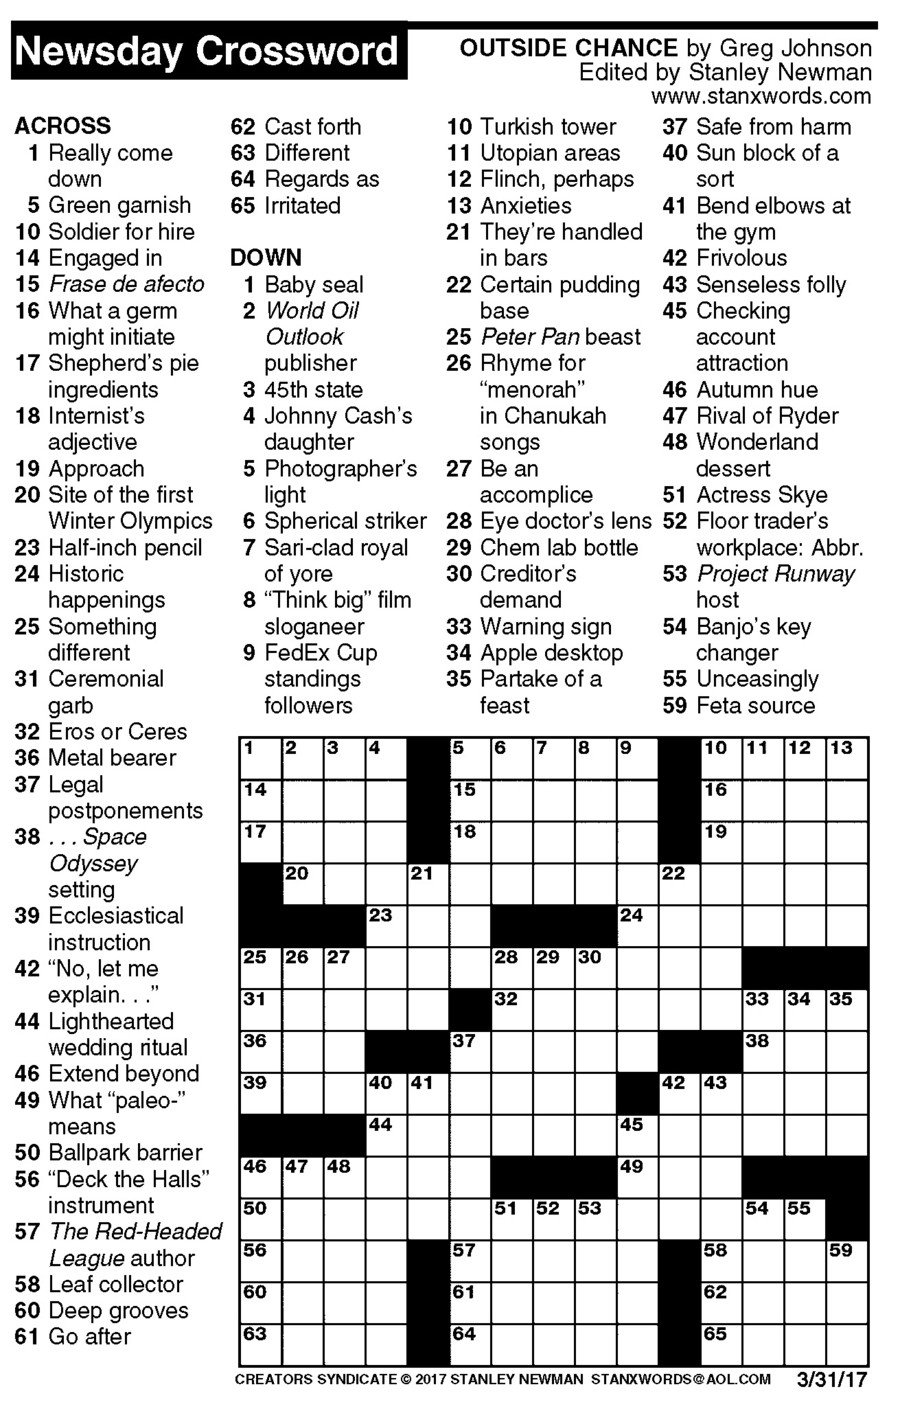 Newsday Crossword Puzzle For Mar 31, 2017,stanley Newman - Printable Crossword Puzzles Newsday